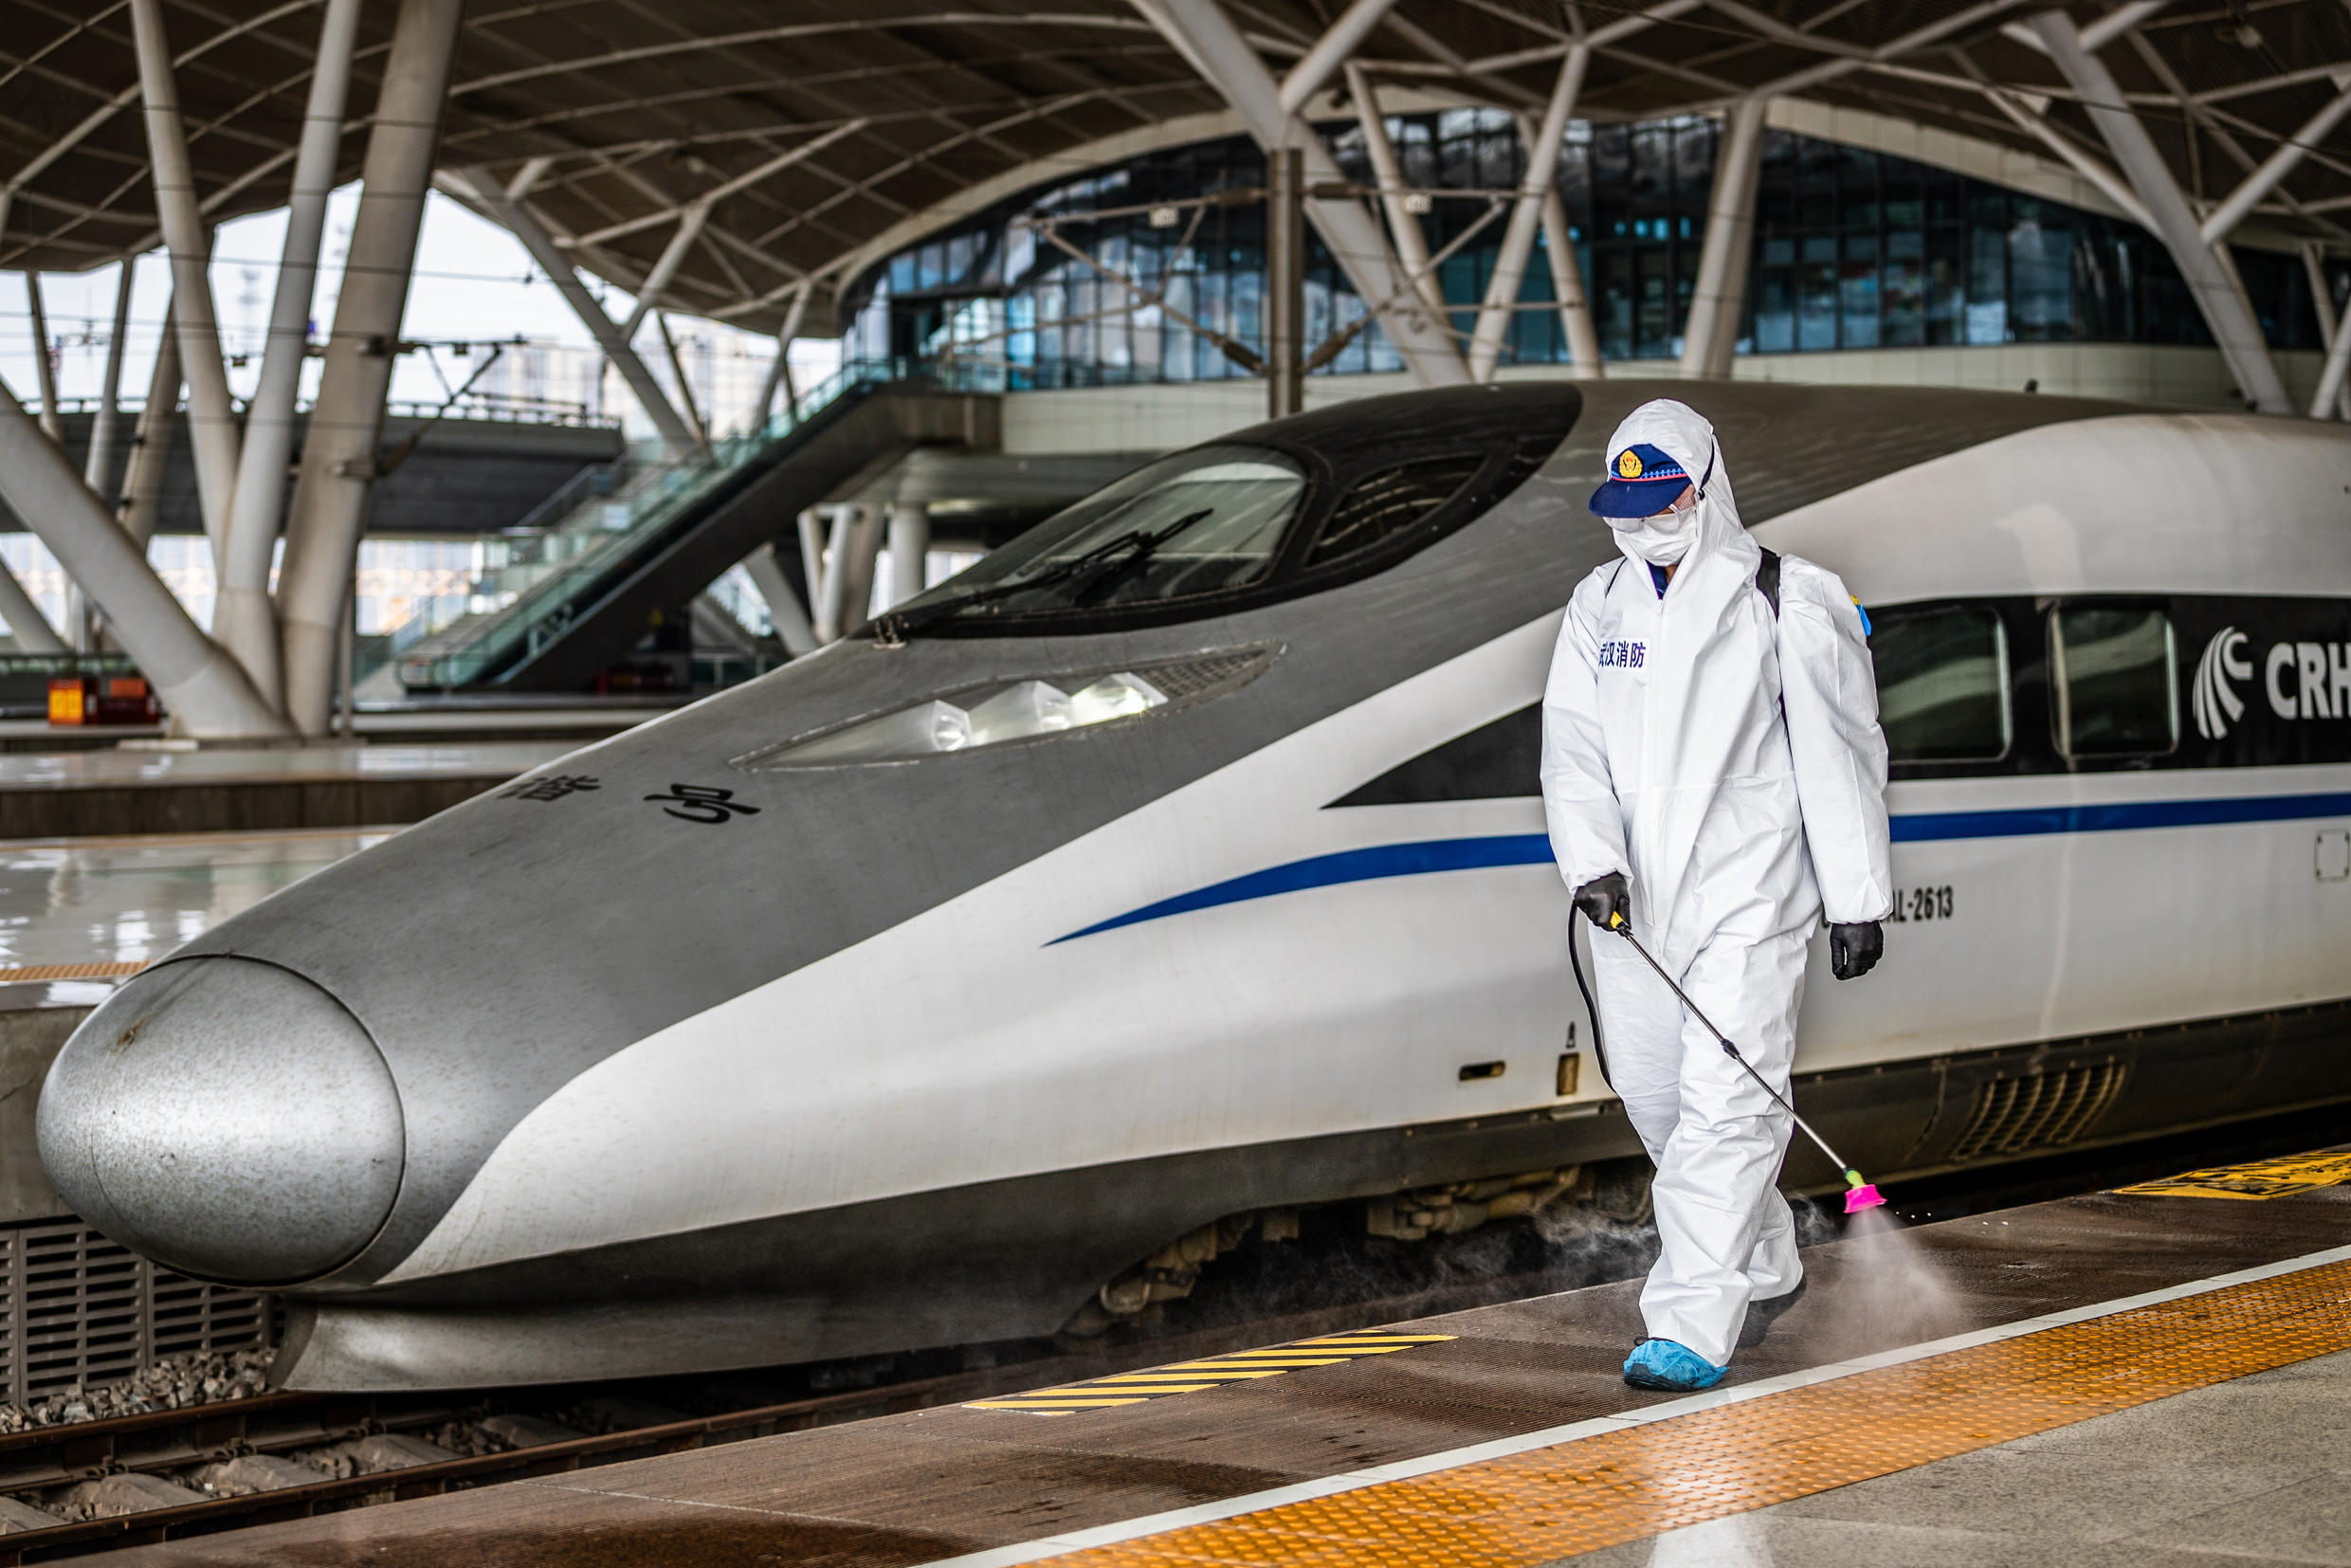 Health personnel spraying the platforms and trains in Wuhan, Hubei province, after local authorities lifted a transport ban. As of 24 March, outbound traffic is allowed from Hubei province, Wuhan will be open to traffic as of April 8